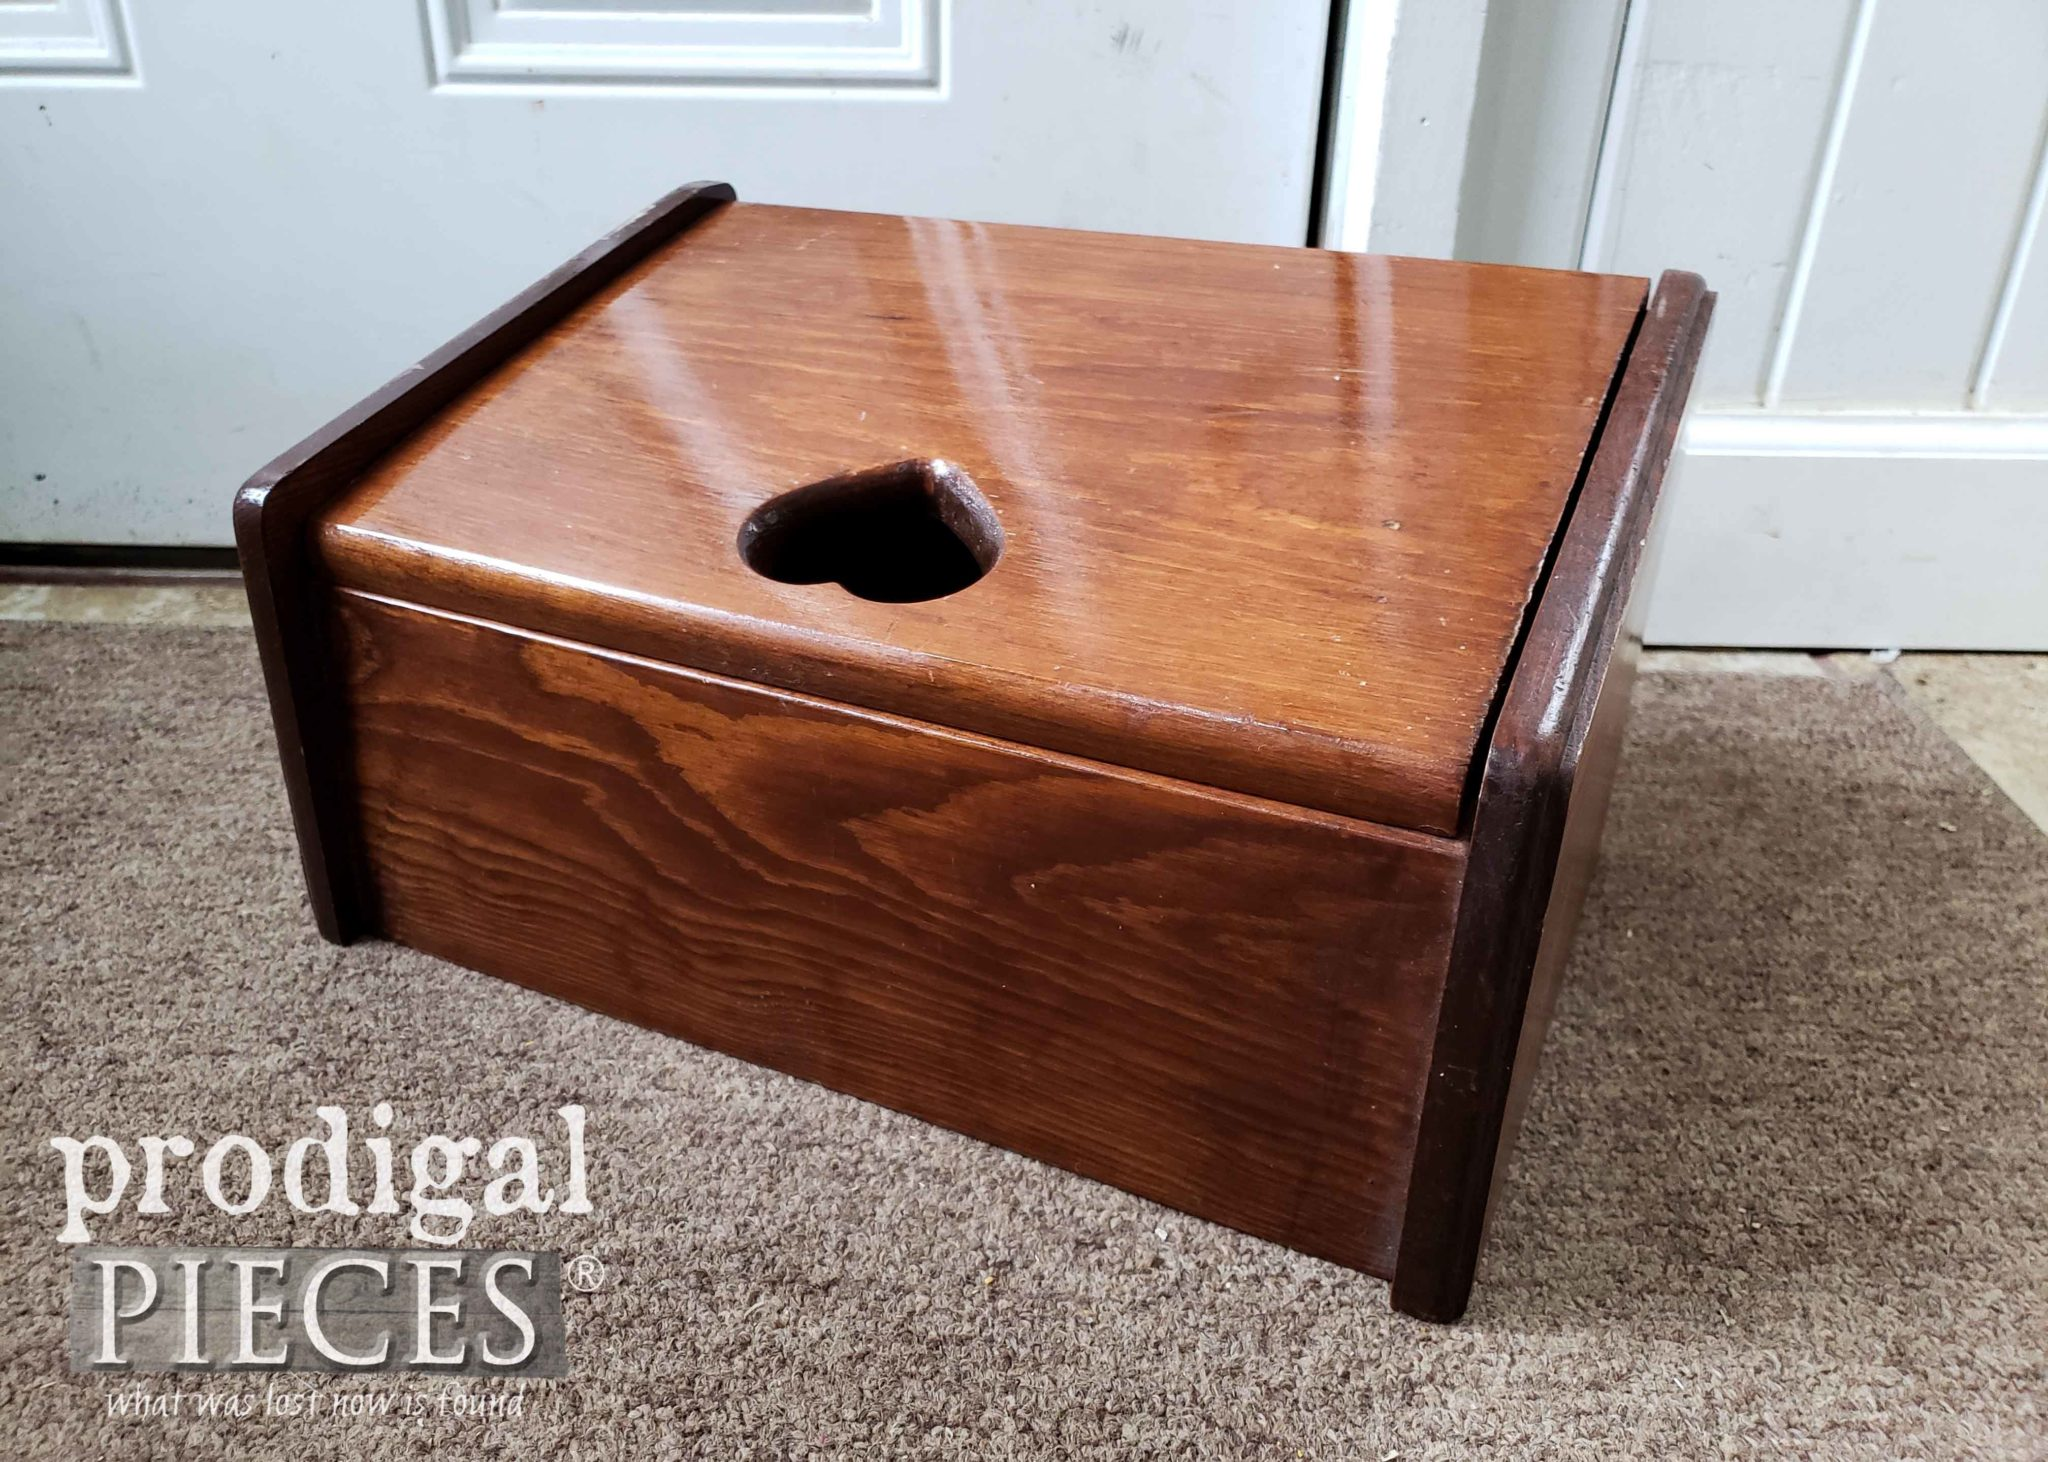 Vintage Bread Box Before Makeover | prodigalpieces.com